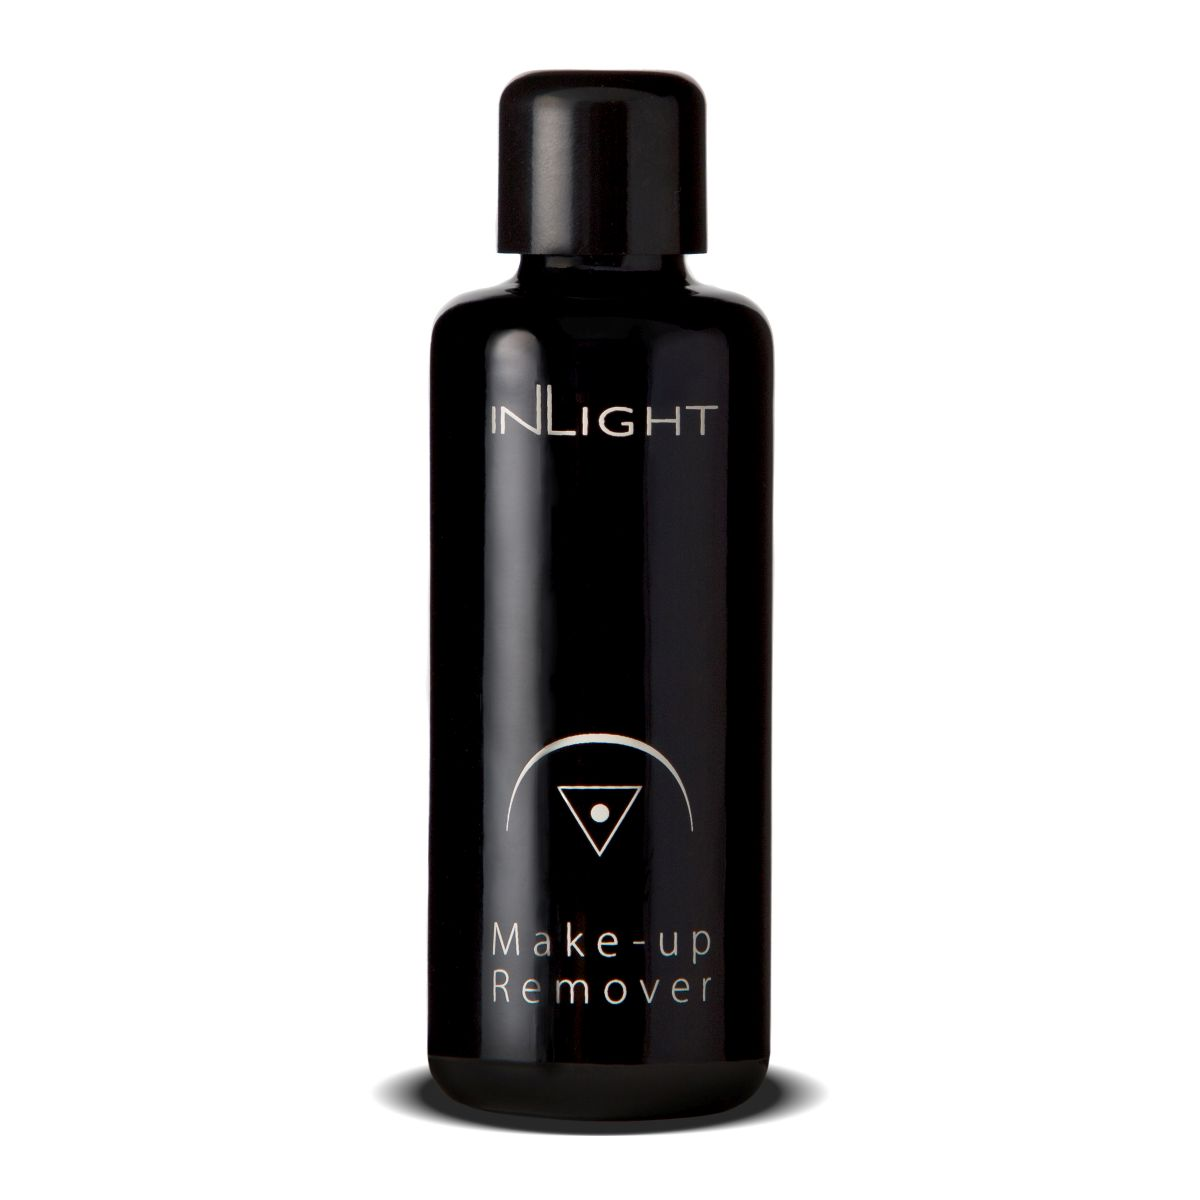 web_Inlight Make-Up Remover